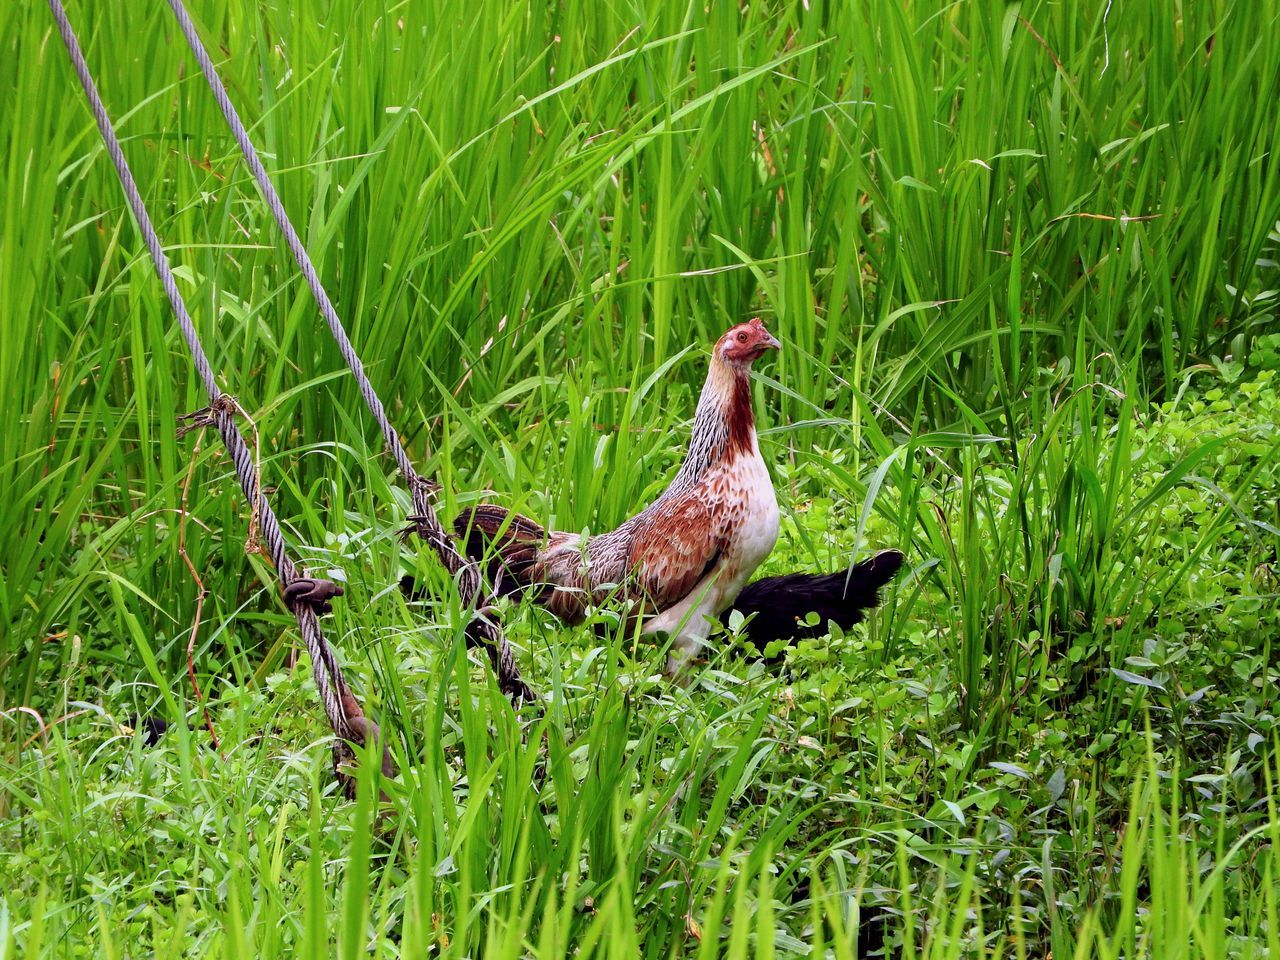 Freedom Is Mine - Somewhat ~ Animal Themes Animals In The Wild Bali Bird Chicken Day Farmlife Field Free Range Freedom Grass Green Color Growth In The Country Long Grass Mammal Nature No People One Animal Outdoors Rice Field Rooster The Great Outdoors - 2017 EyeEm Awards